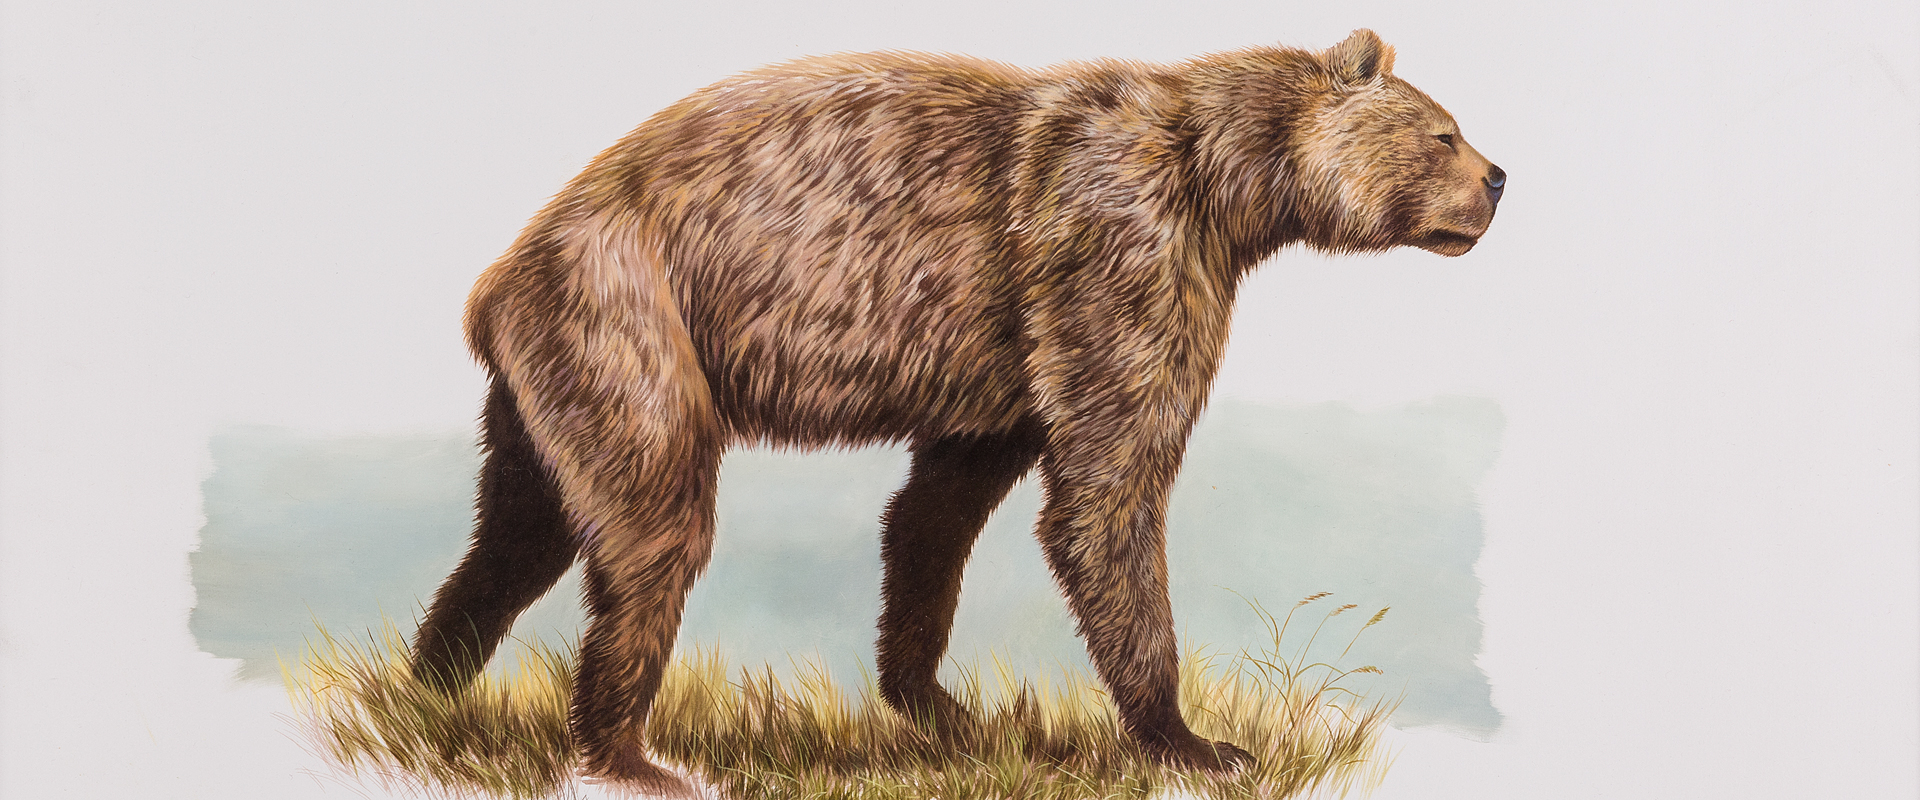 The Top 15 Most Beautiful Extinct Animals